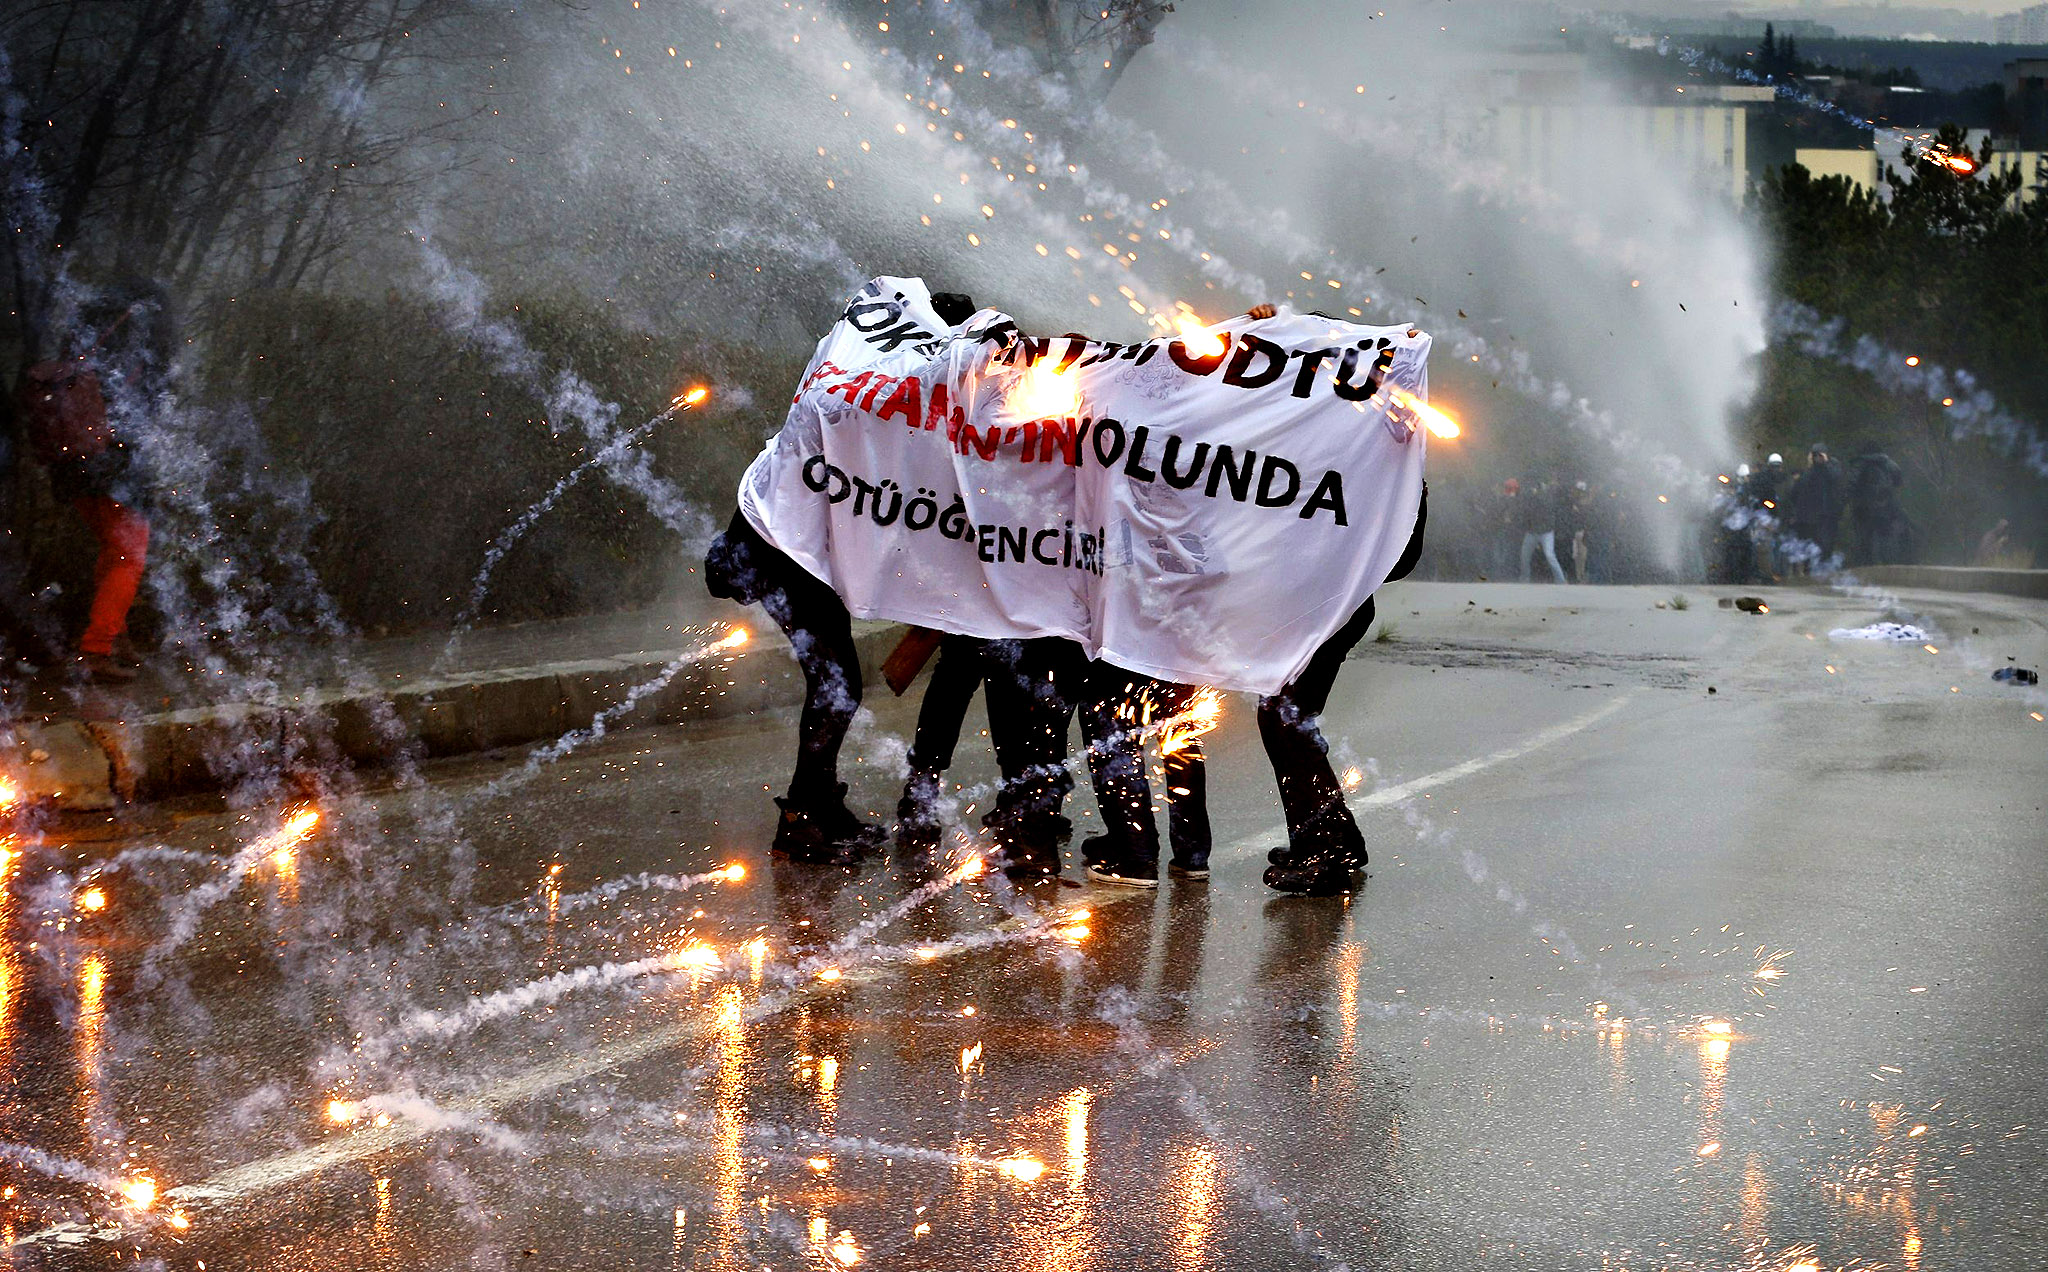 Demonstrators take cover from a police water cannon as fireworks, thrown by other protesters, explode around them during a demonstration against the opening of a new road including a part of the Middle East Technical University campus in Ankara...Demonstrators take cover from a police water cannon as fireworks, thrown by other protesters, explode around them during a demonstration against the opening of a new road including a part of the Middle East Technical University campus in Ankara February 25, 2014. Erdogan opened the road across the Middle East Technical University campus and uprooting a large number of trees in the area in Ankara on Tuesday.